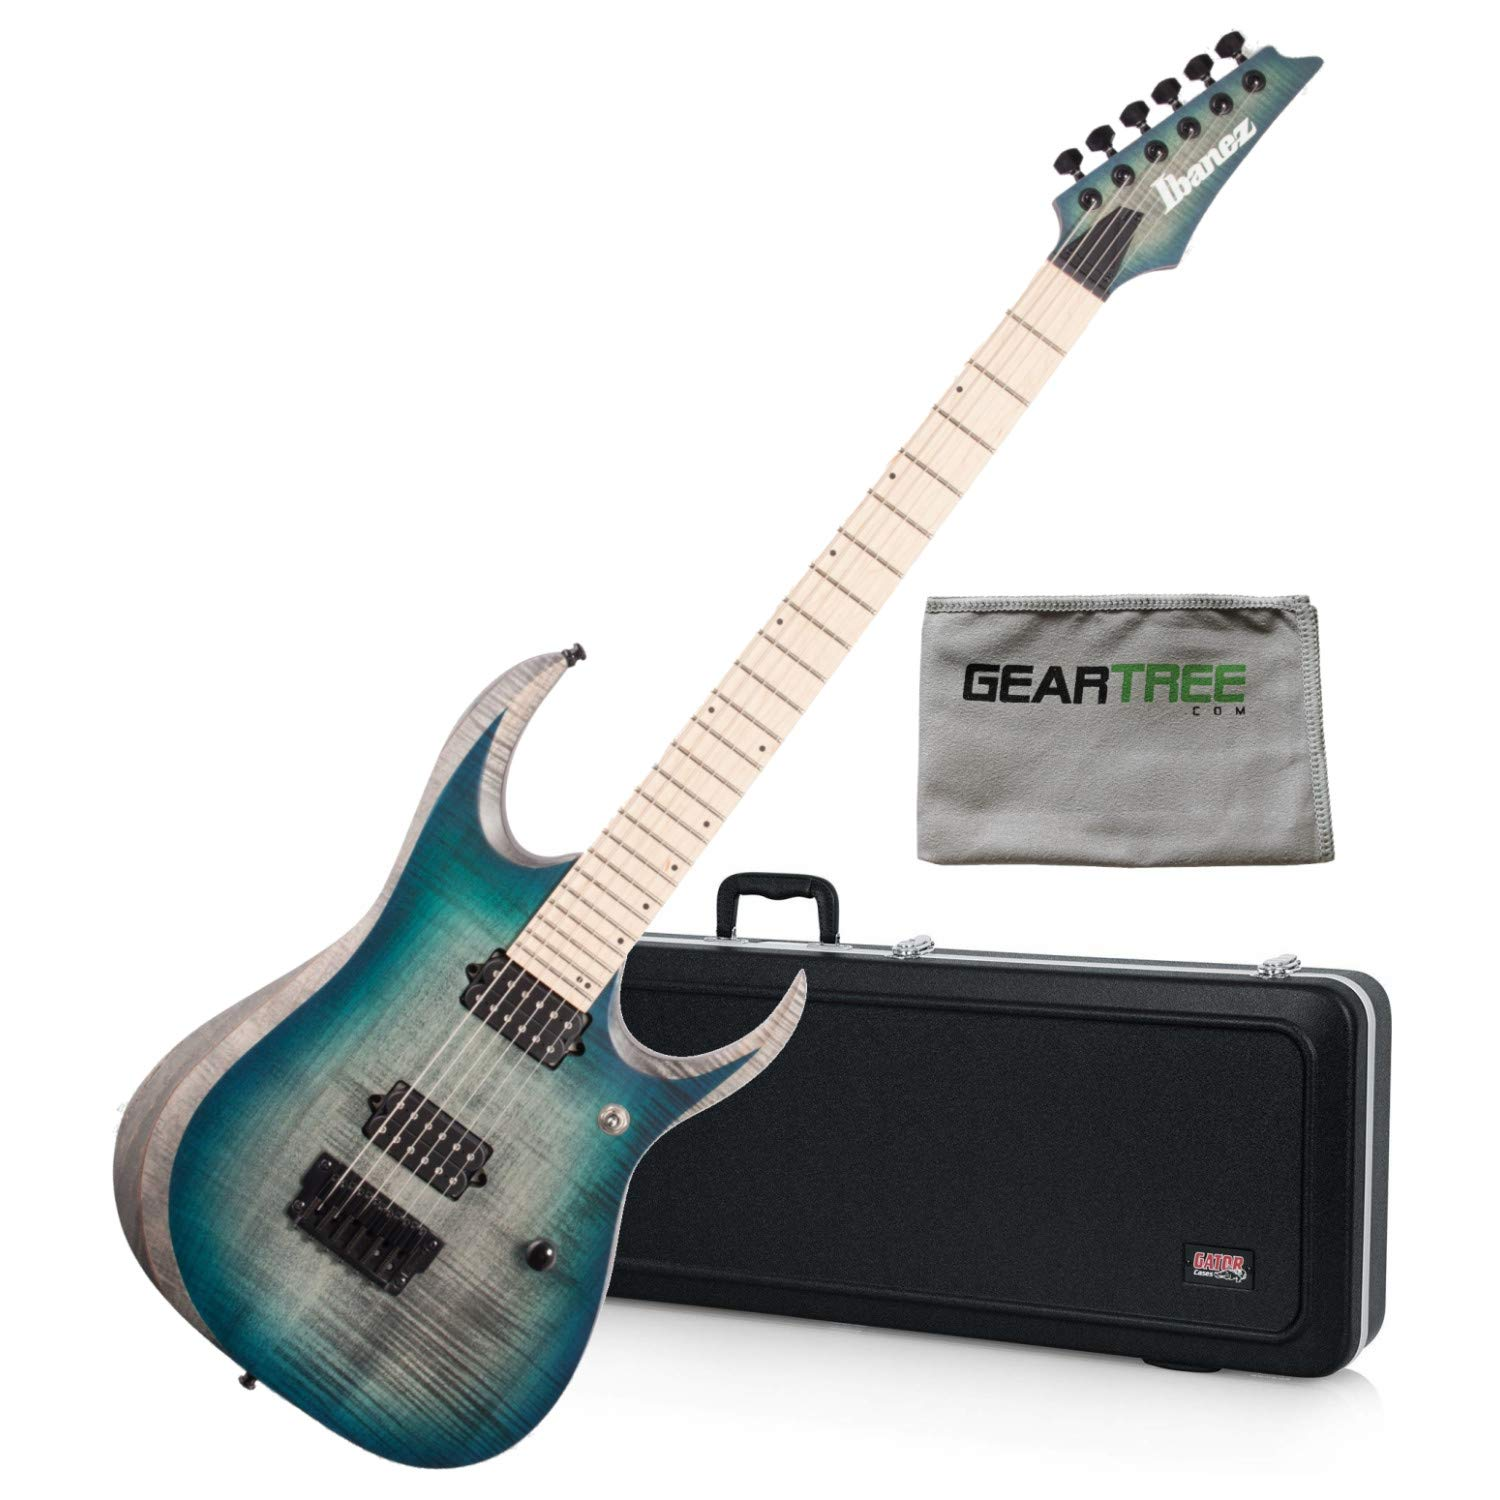 Cheap Ibanez RGD61ALSSB RGD Axion Label Electric Guitar Stained Sapphire Blue Burst w/ Black Friday & Cyber Monday 2019